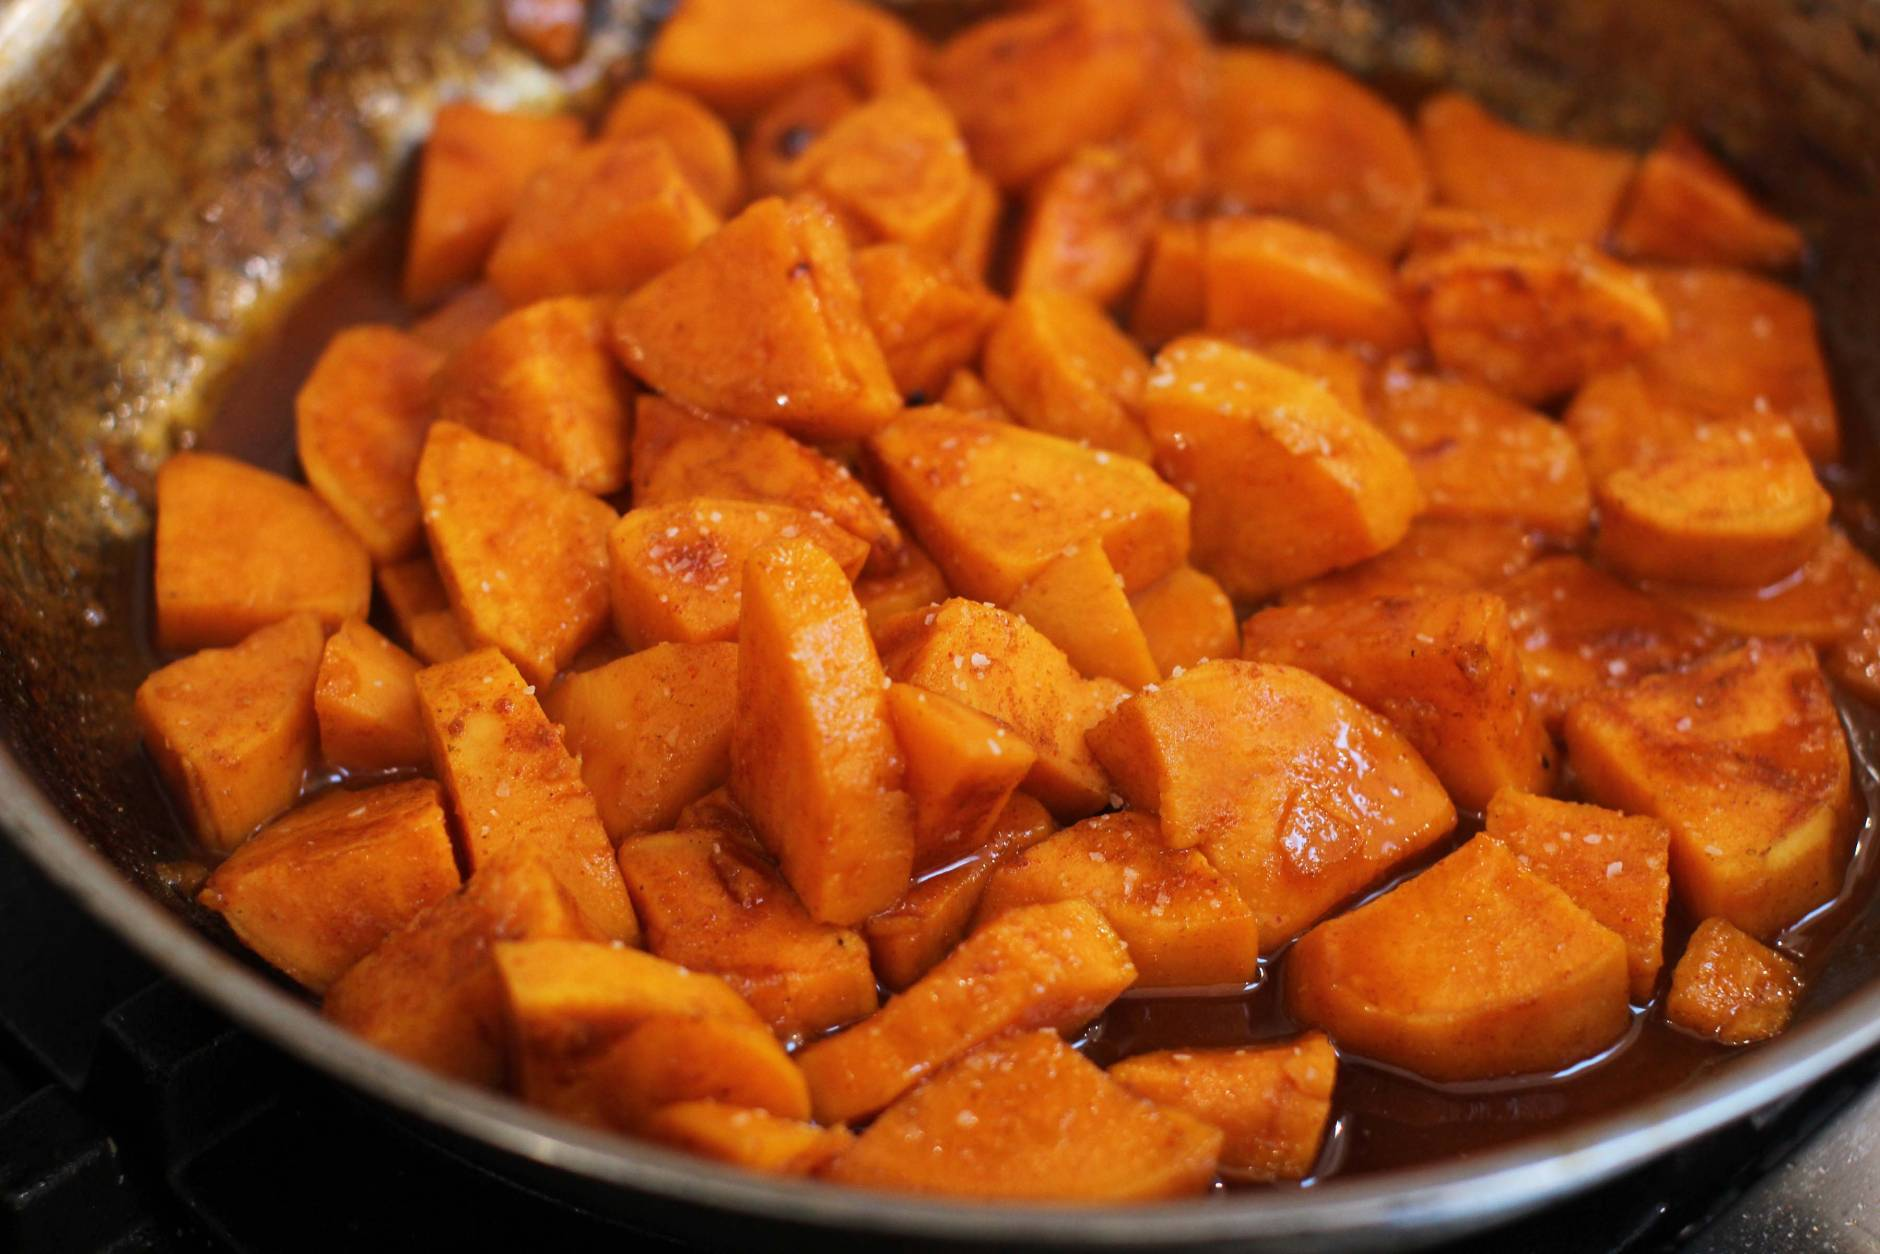 This Oct.  26, 2015 photo shows skillet glazed spicy sweet potatoes in Concord, NH.  No room in the oven, you can cook these delicious glazed sweet potatoes on top of the stove in about 10 minutes flat. (AP Photo/Matthew Mead)